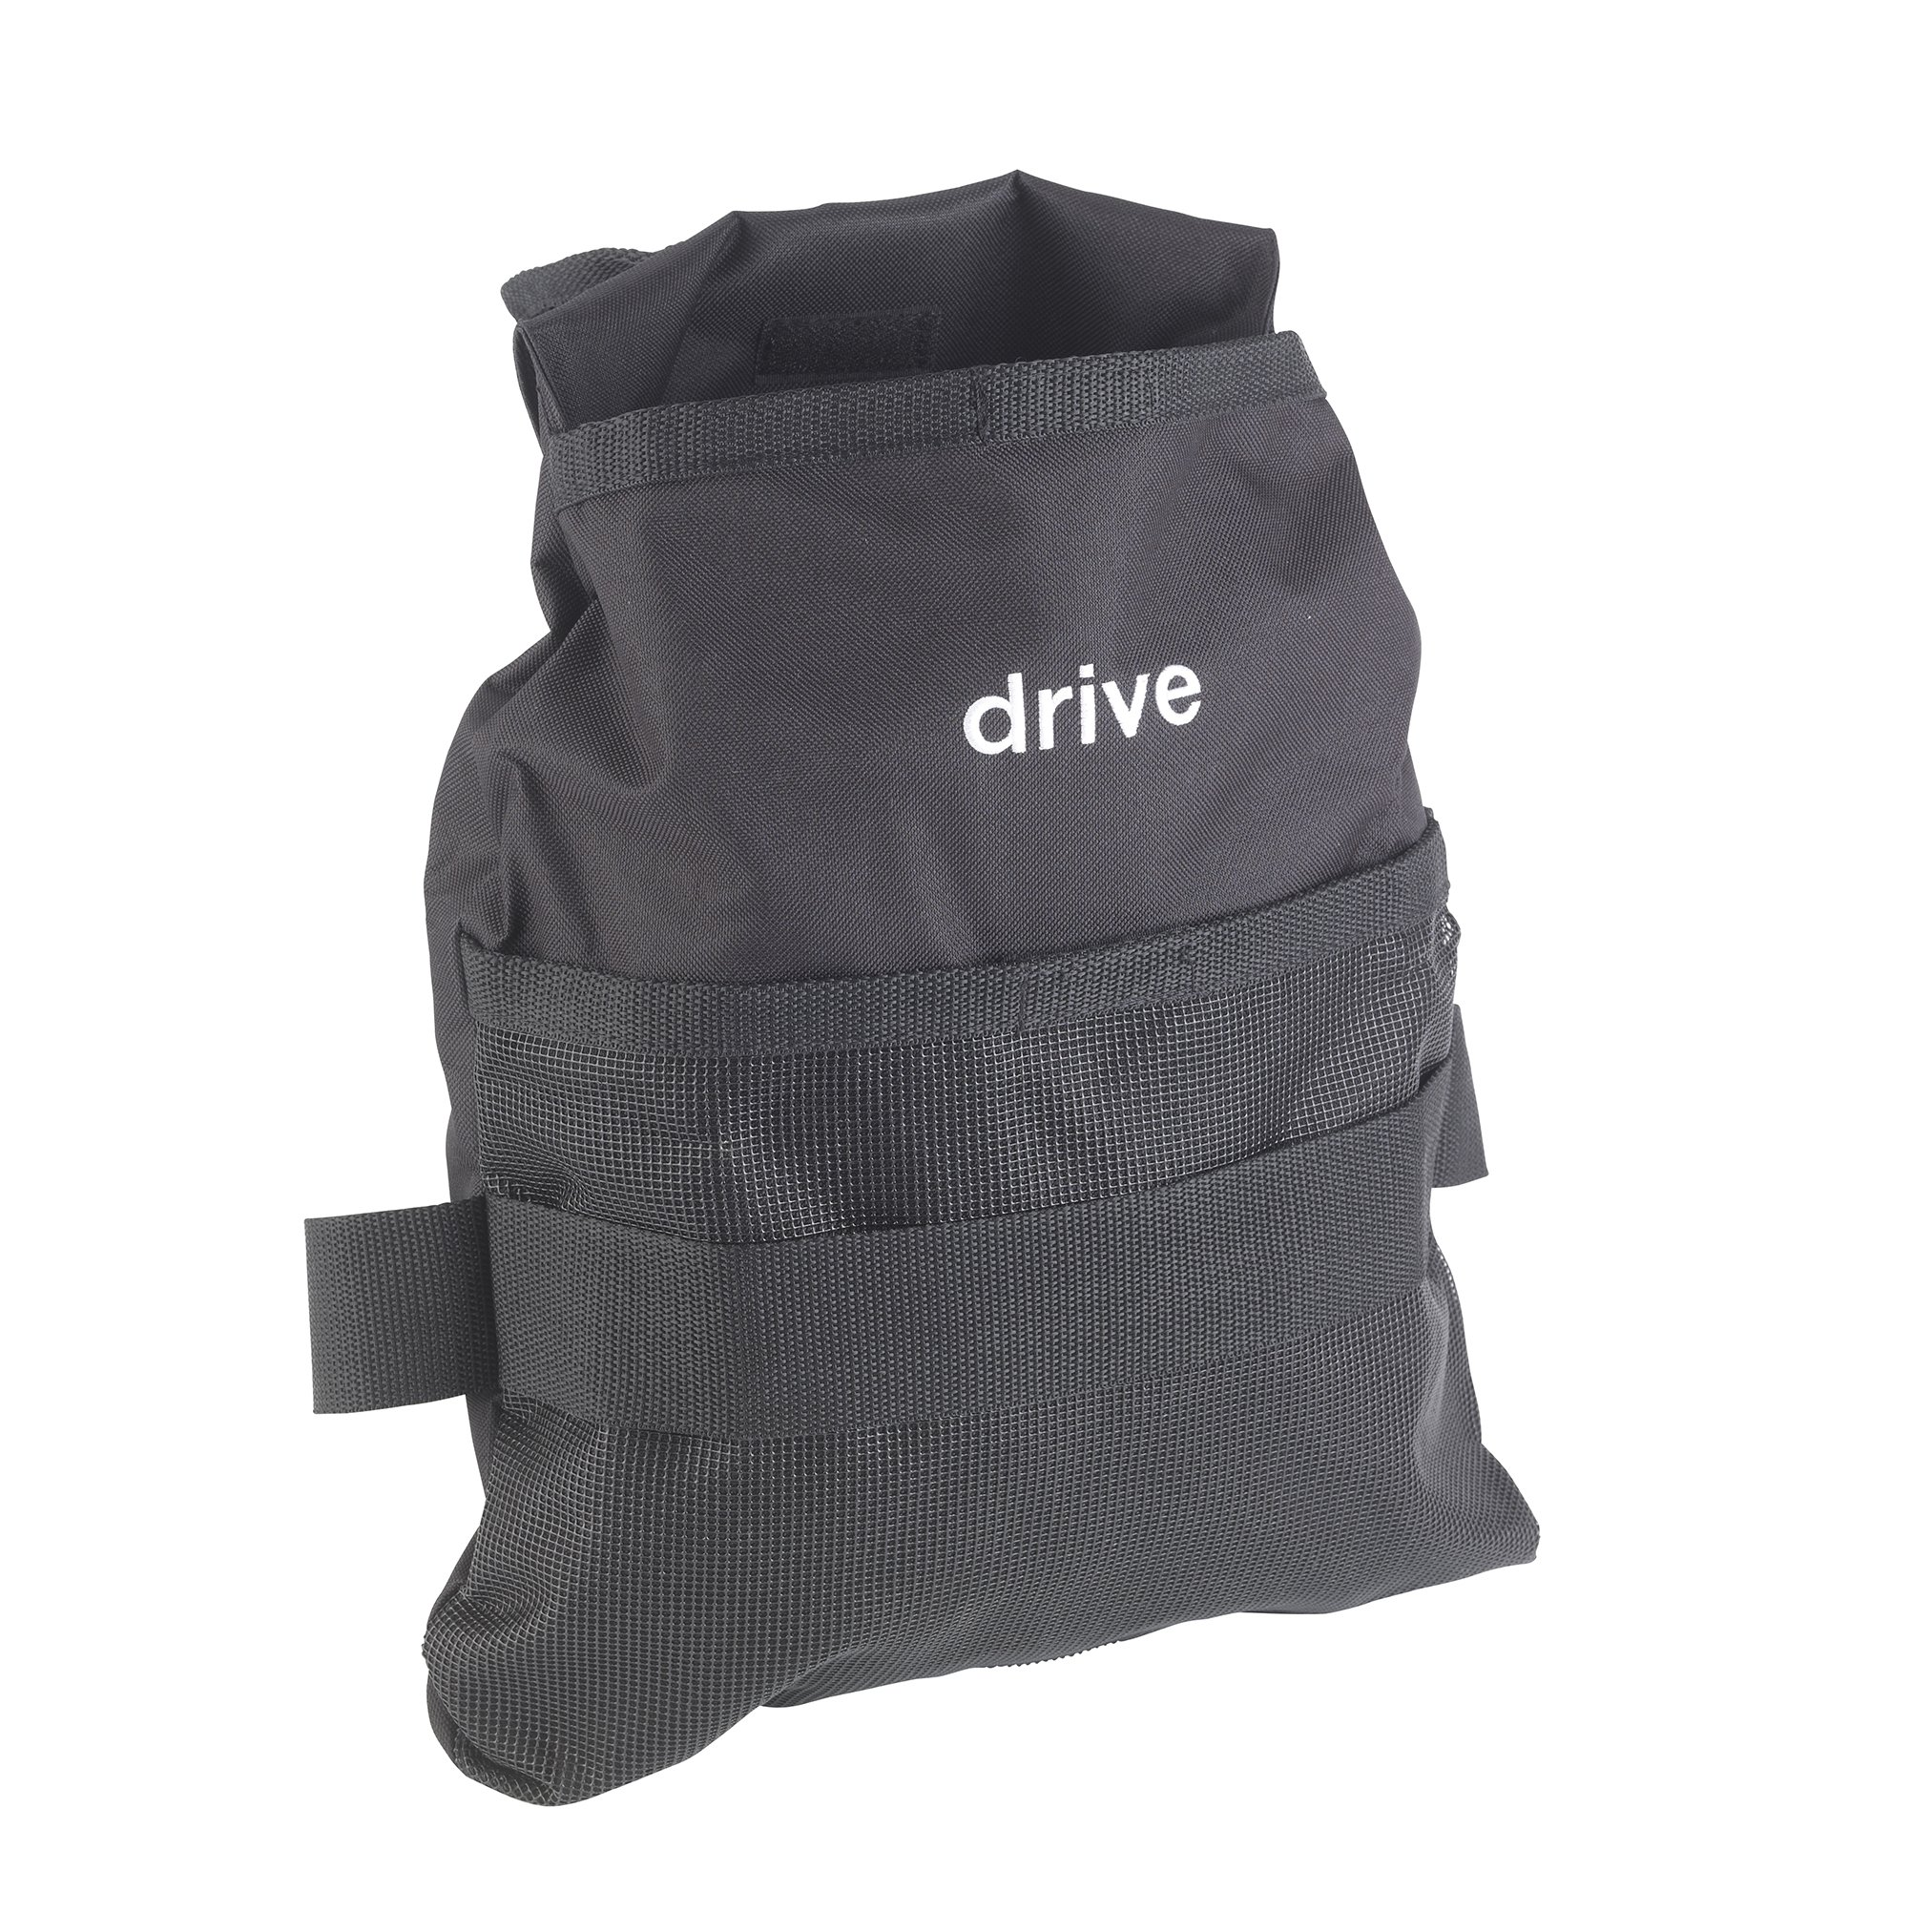 Drive Medical Deluxe Side Walker Carry Pouch, Black by Drive Medical (Image #2)